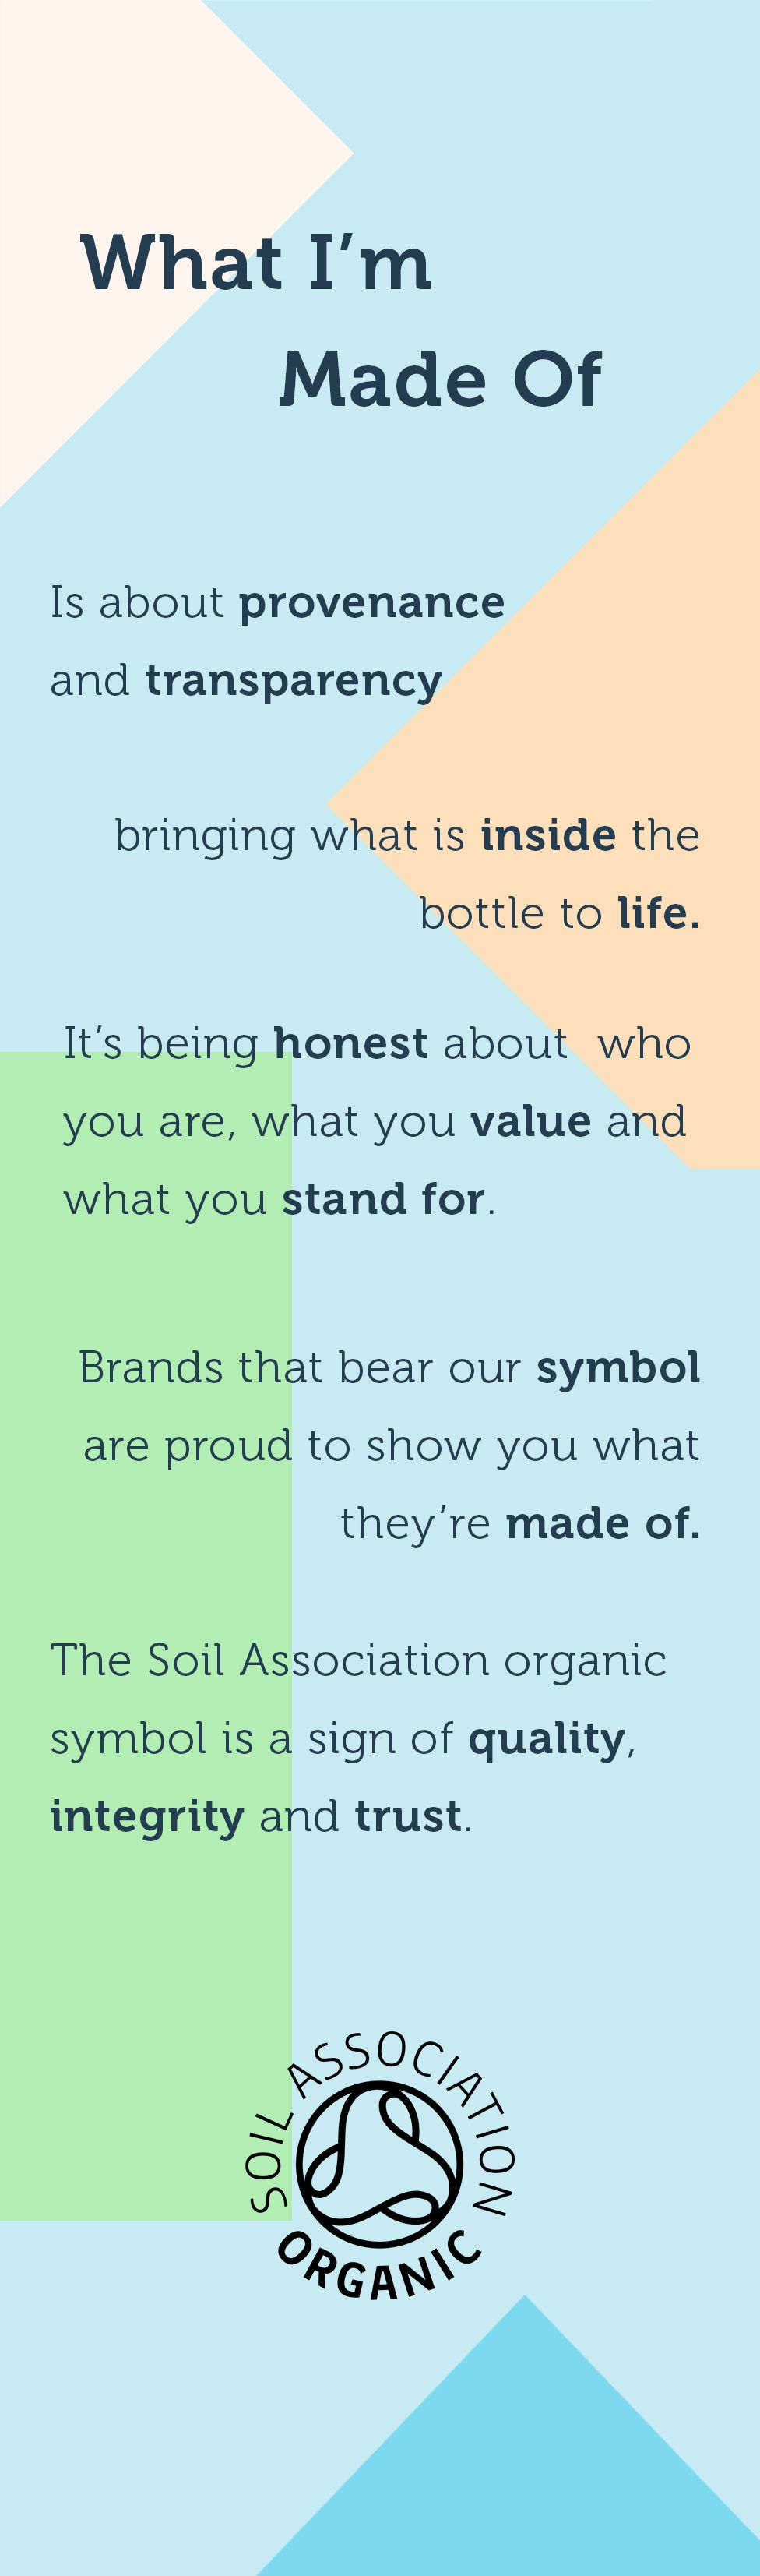 Organic Means So Much More Than Just The Symbol It Is A Sign Of